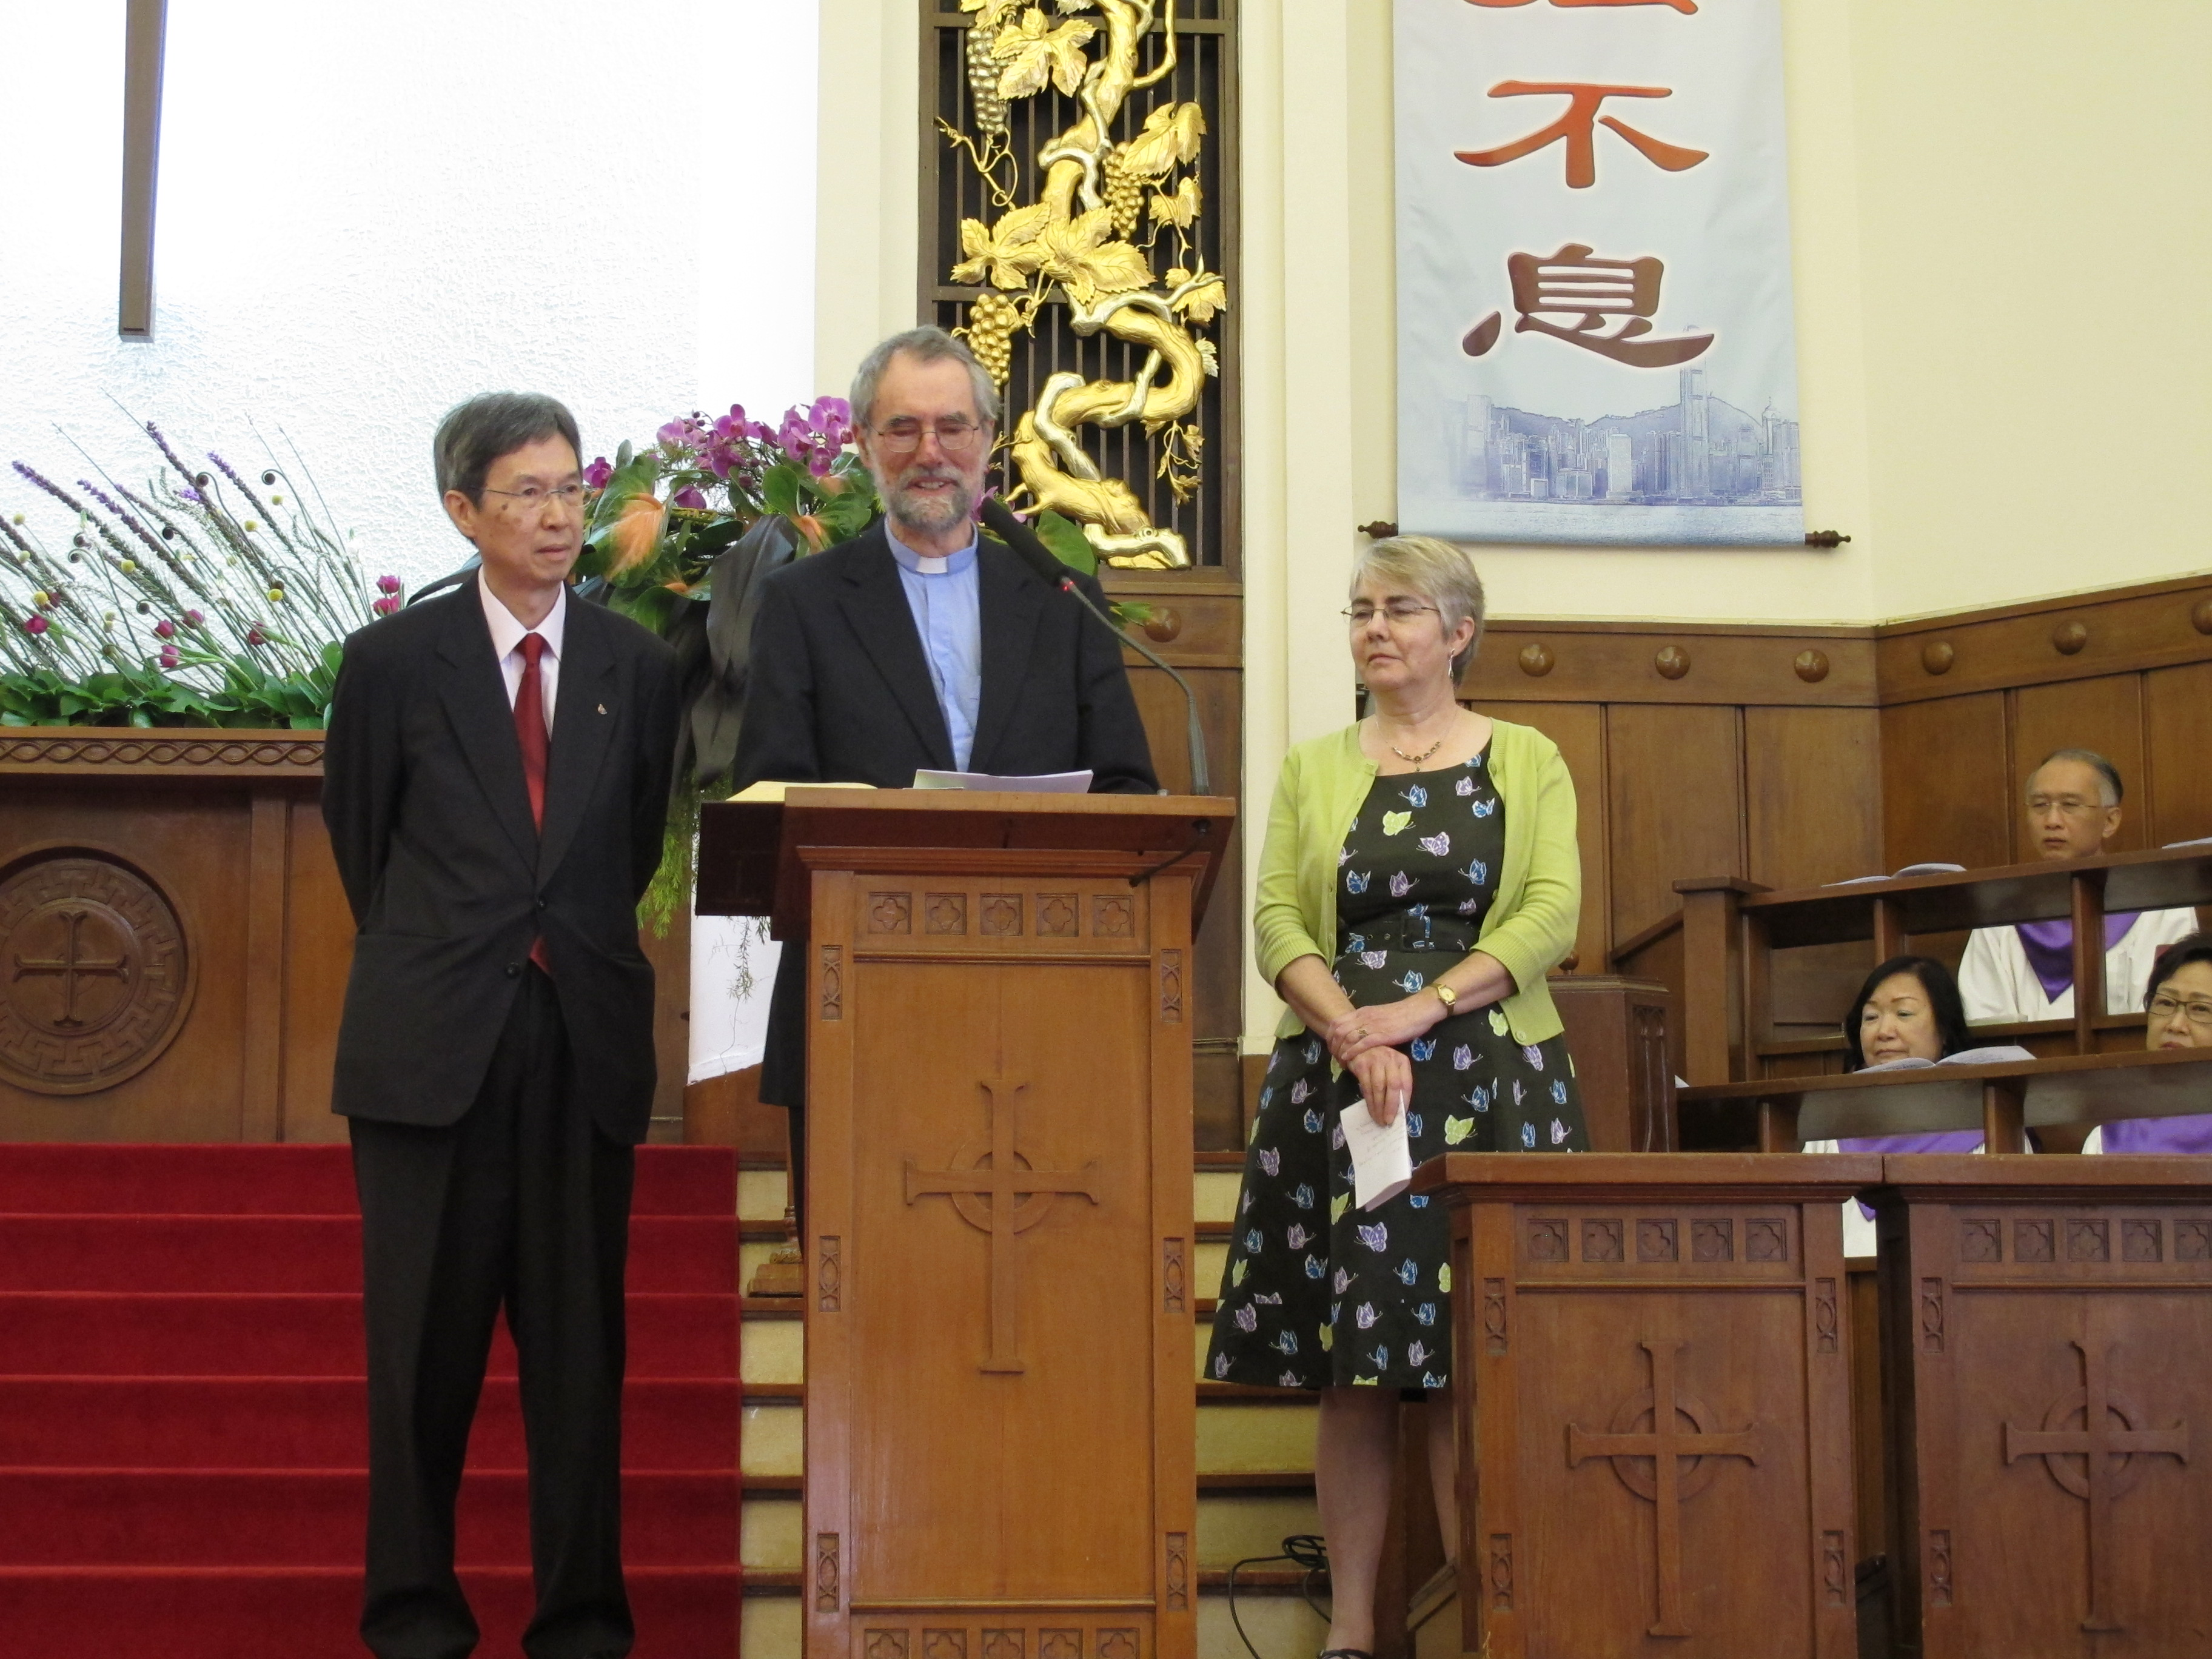 HC.10 addressing congregation Kowloon MC 22mar15